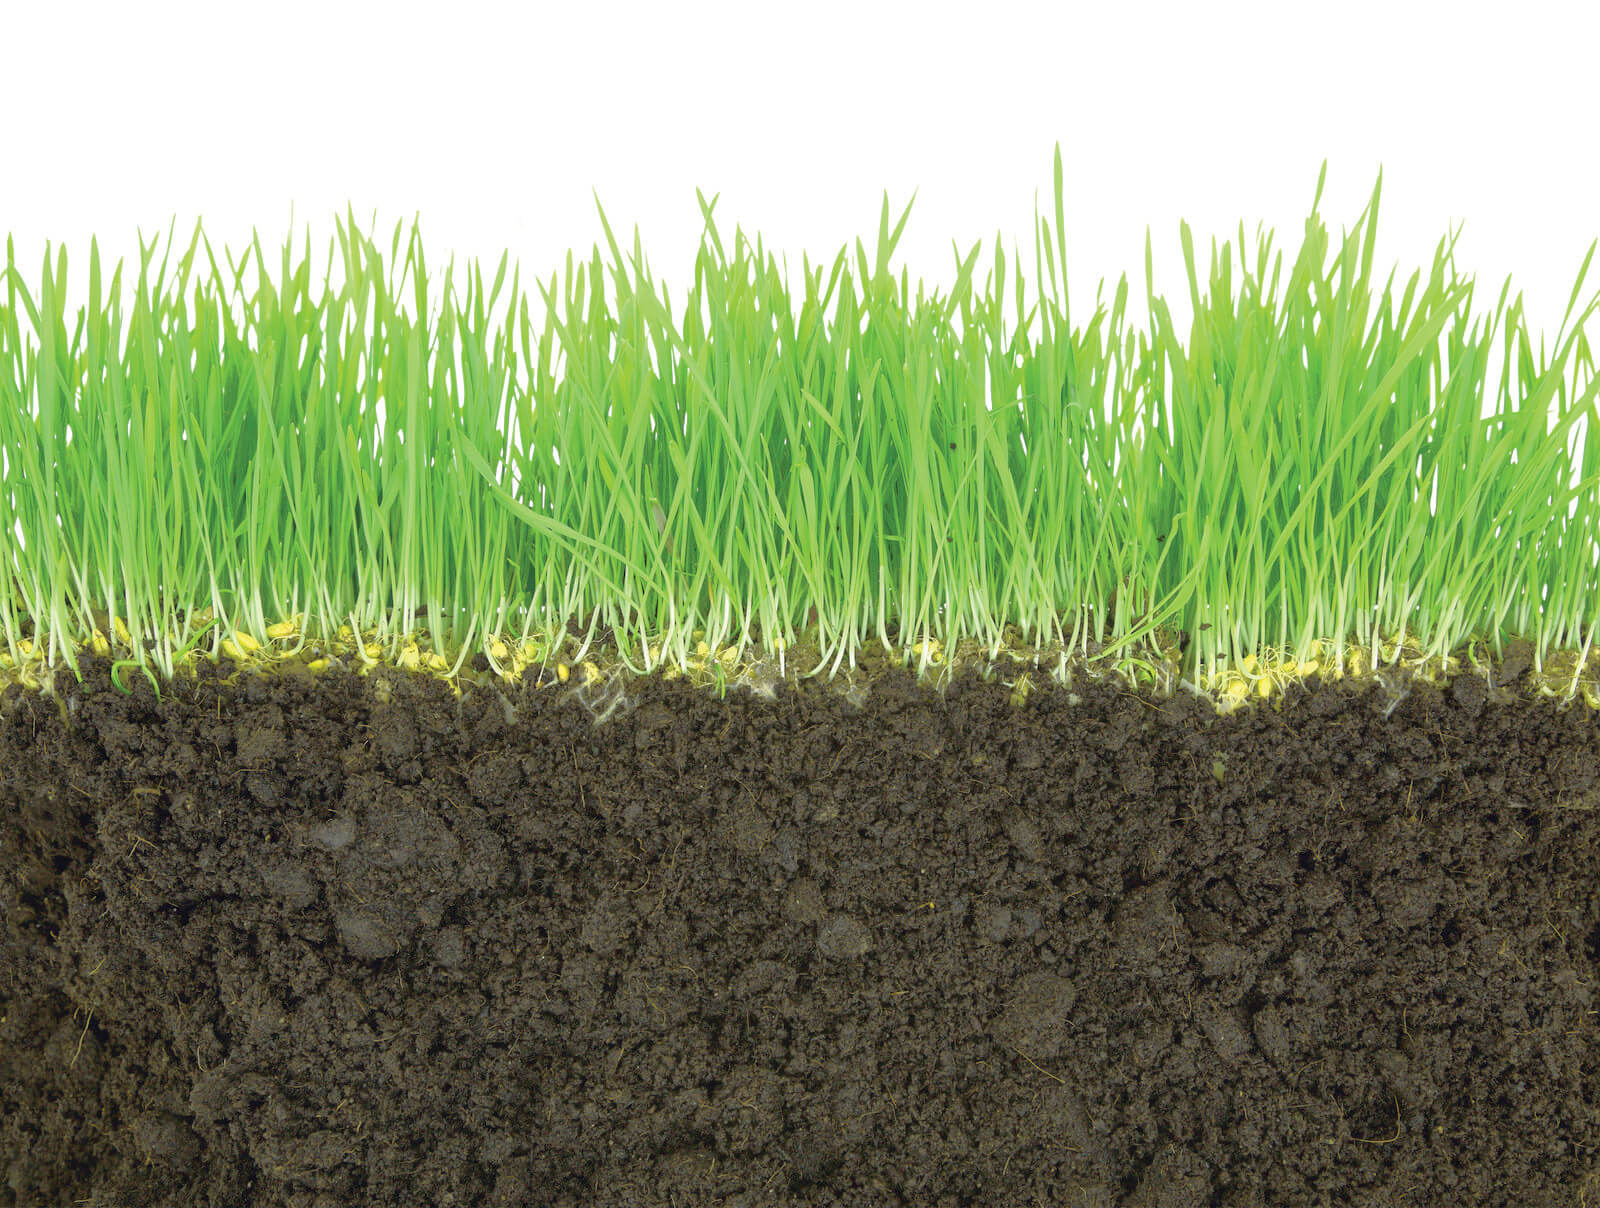 Micronutrient content in our soil